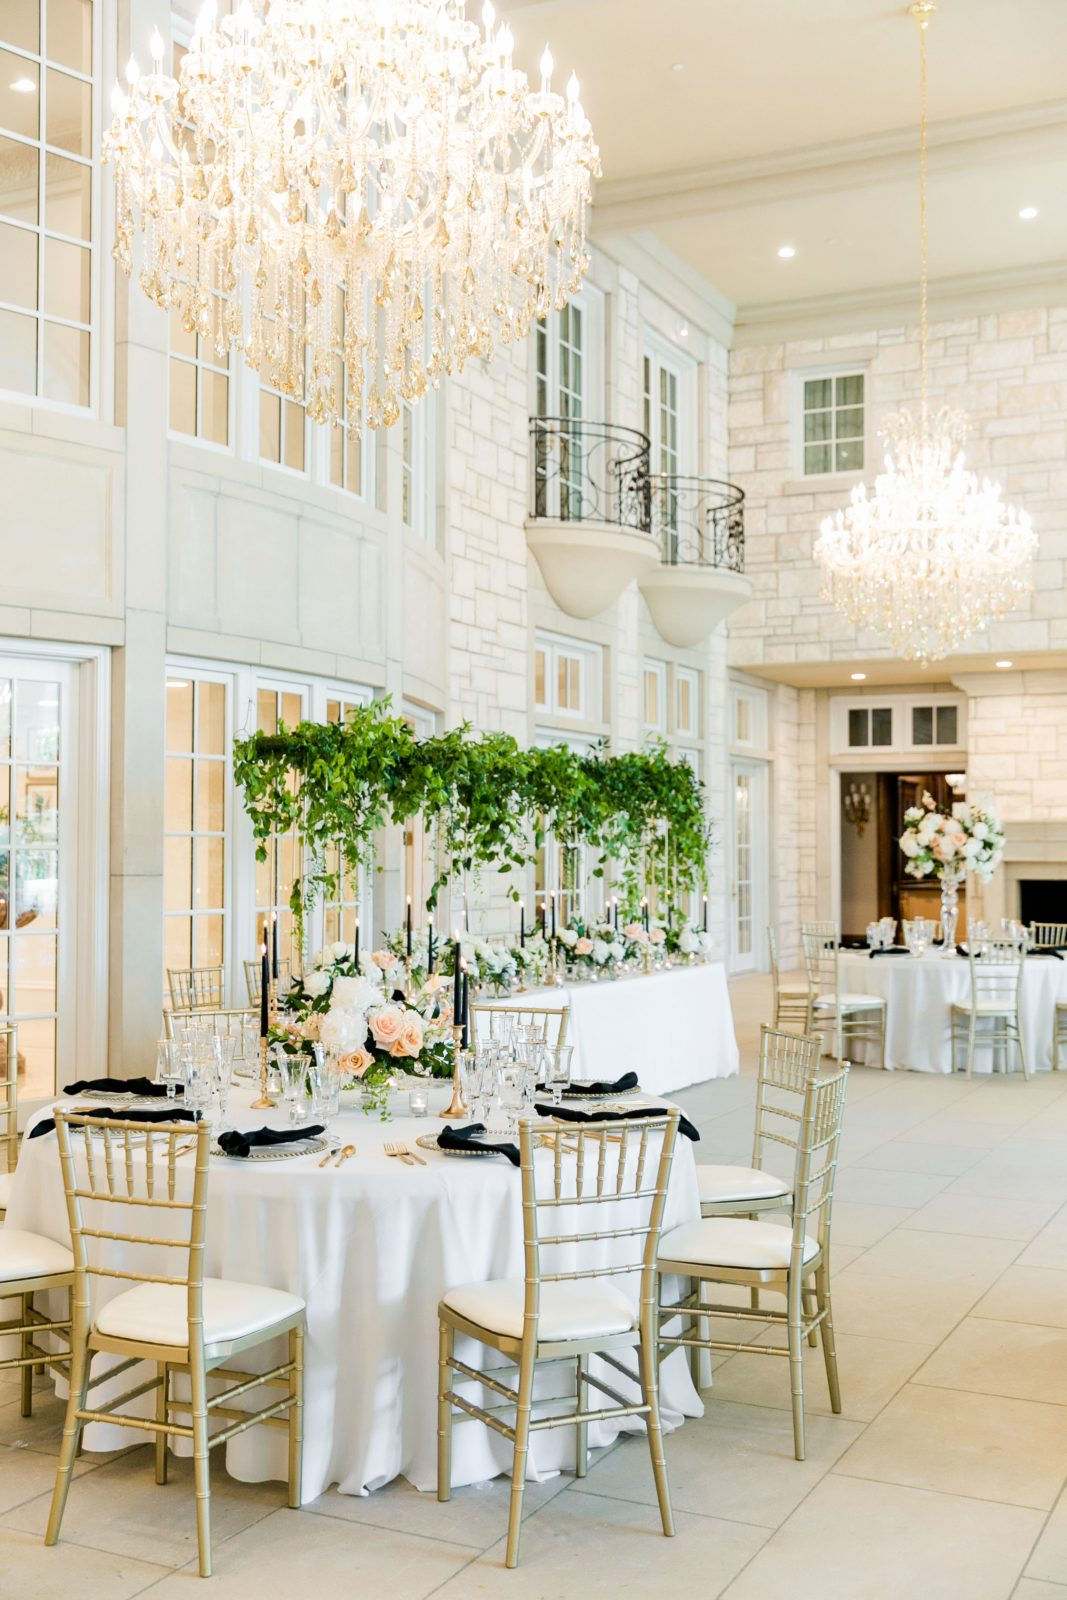 Ballroom wedding inspiration: Sophisticated and Chic wedding inspiration on Alexa Kay Events